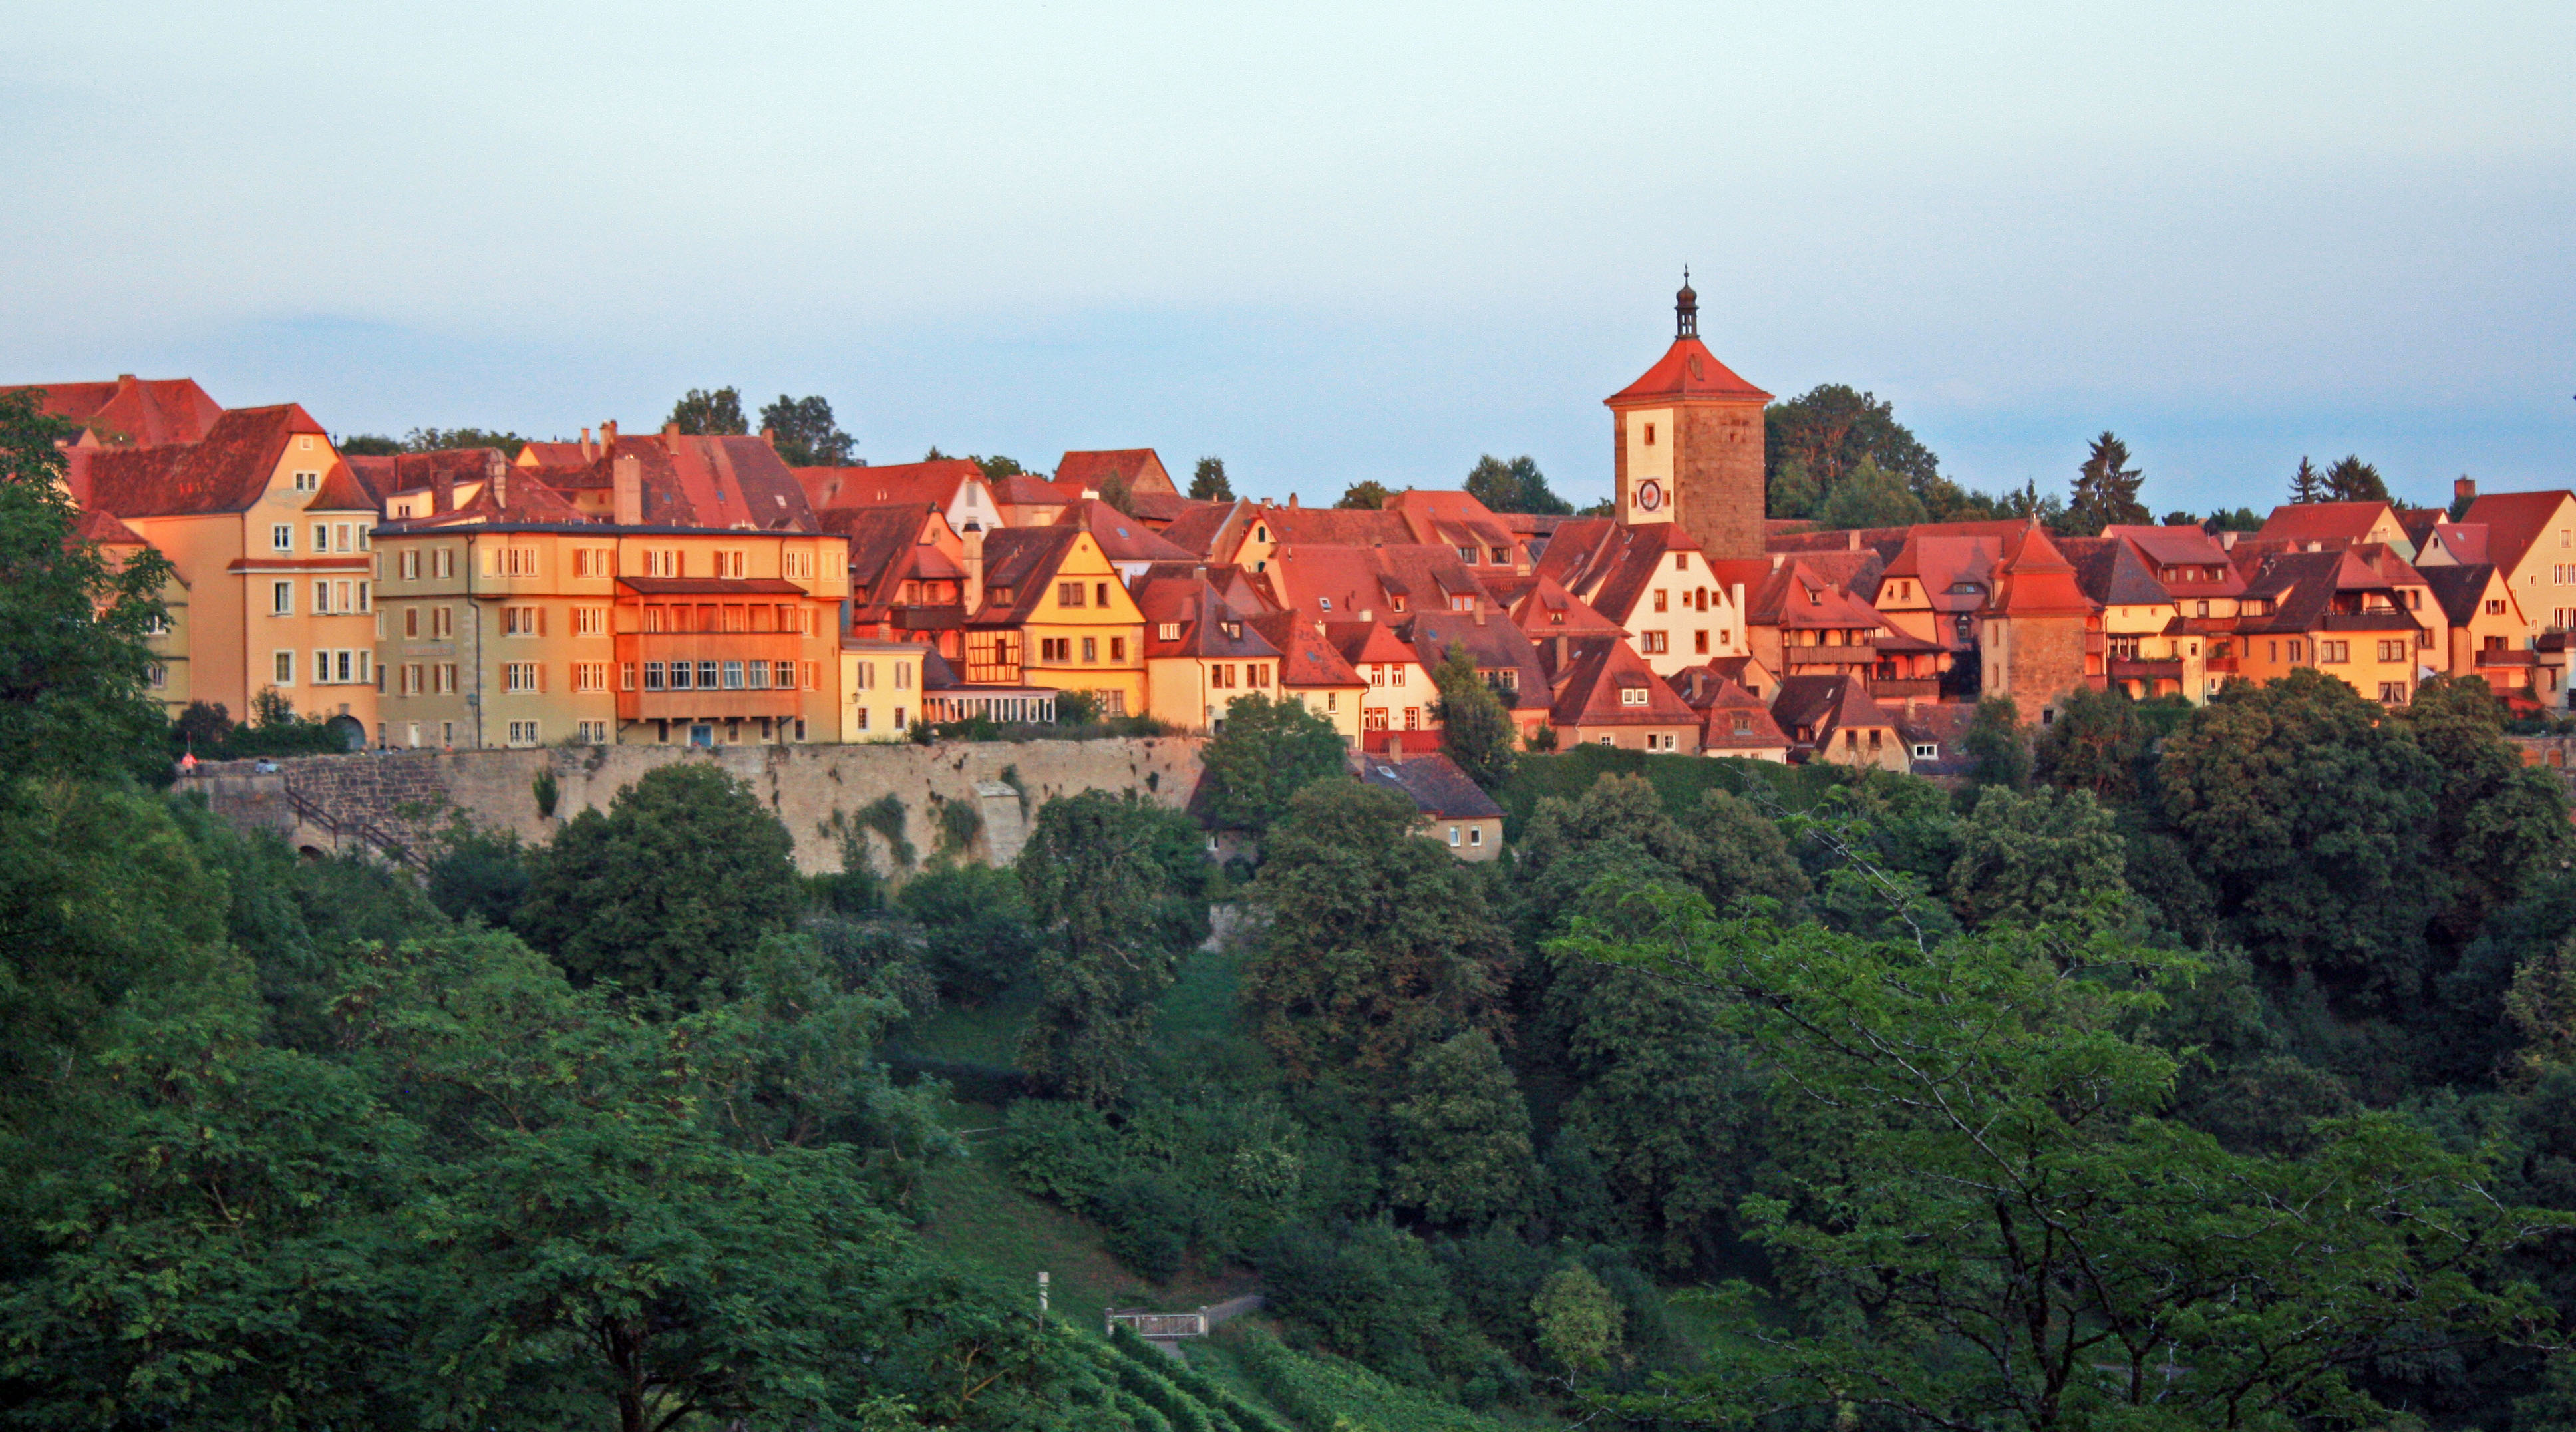 The sun setting over Rothenburg.